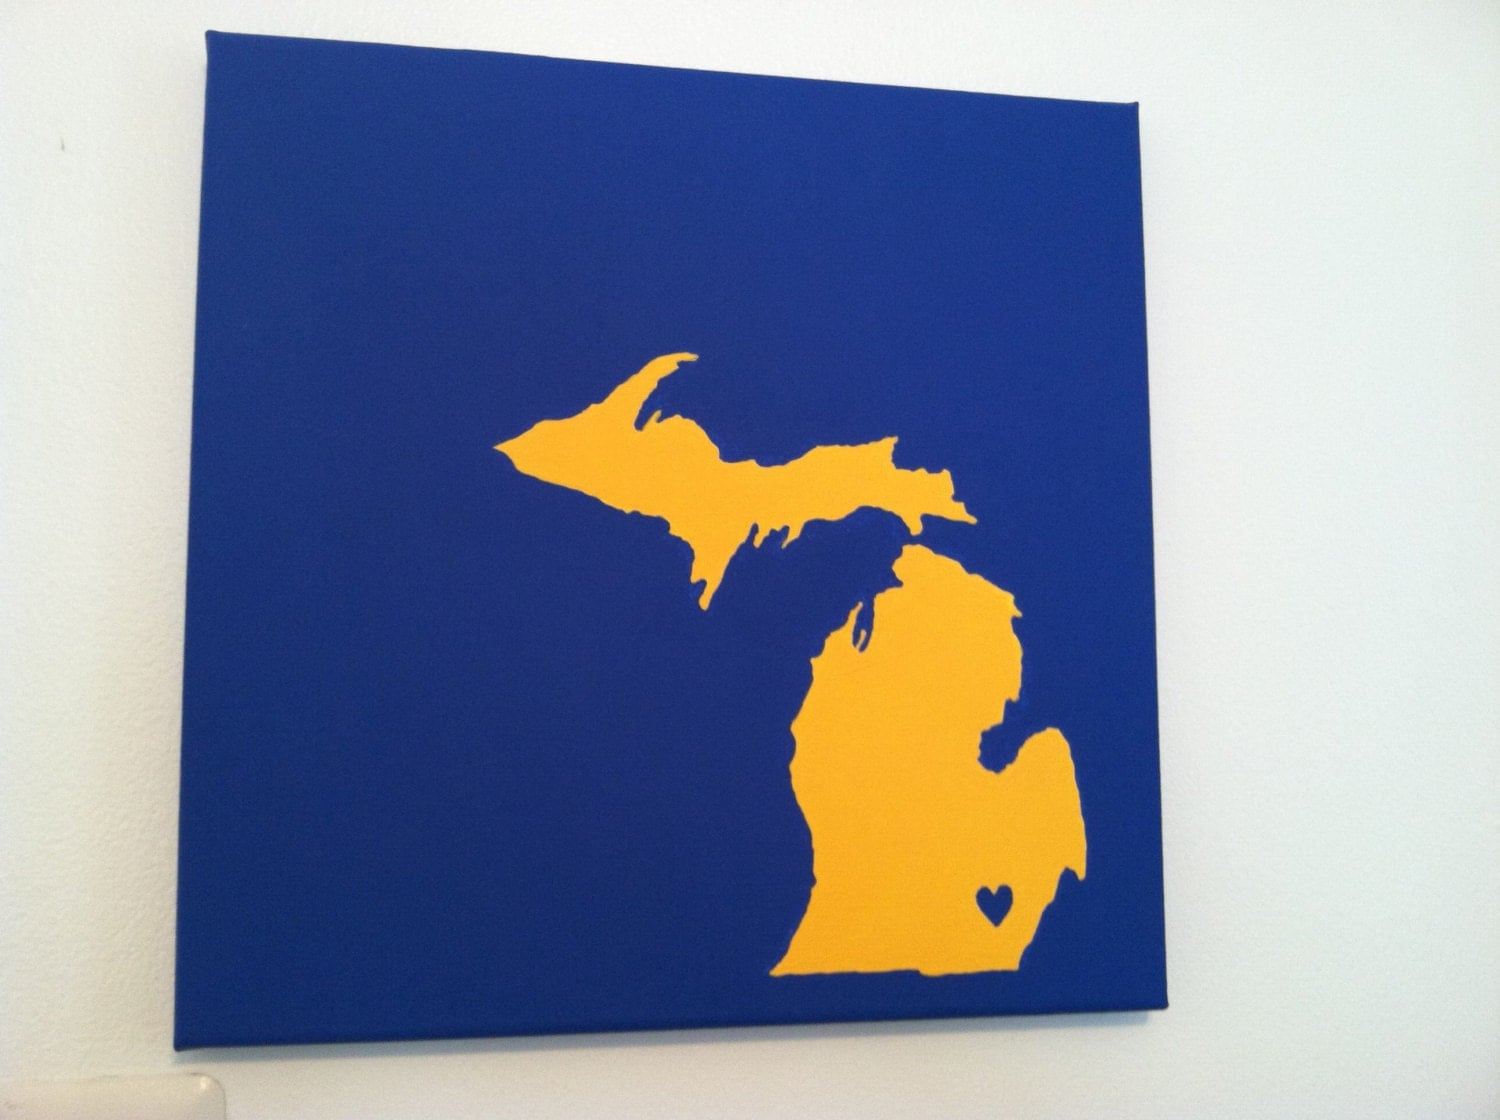 university of michigan love painting 12x12 canvas